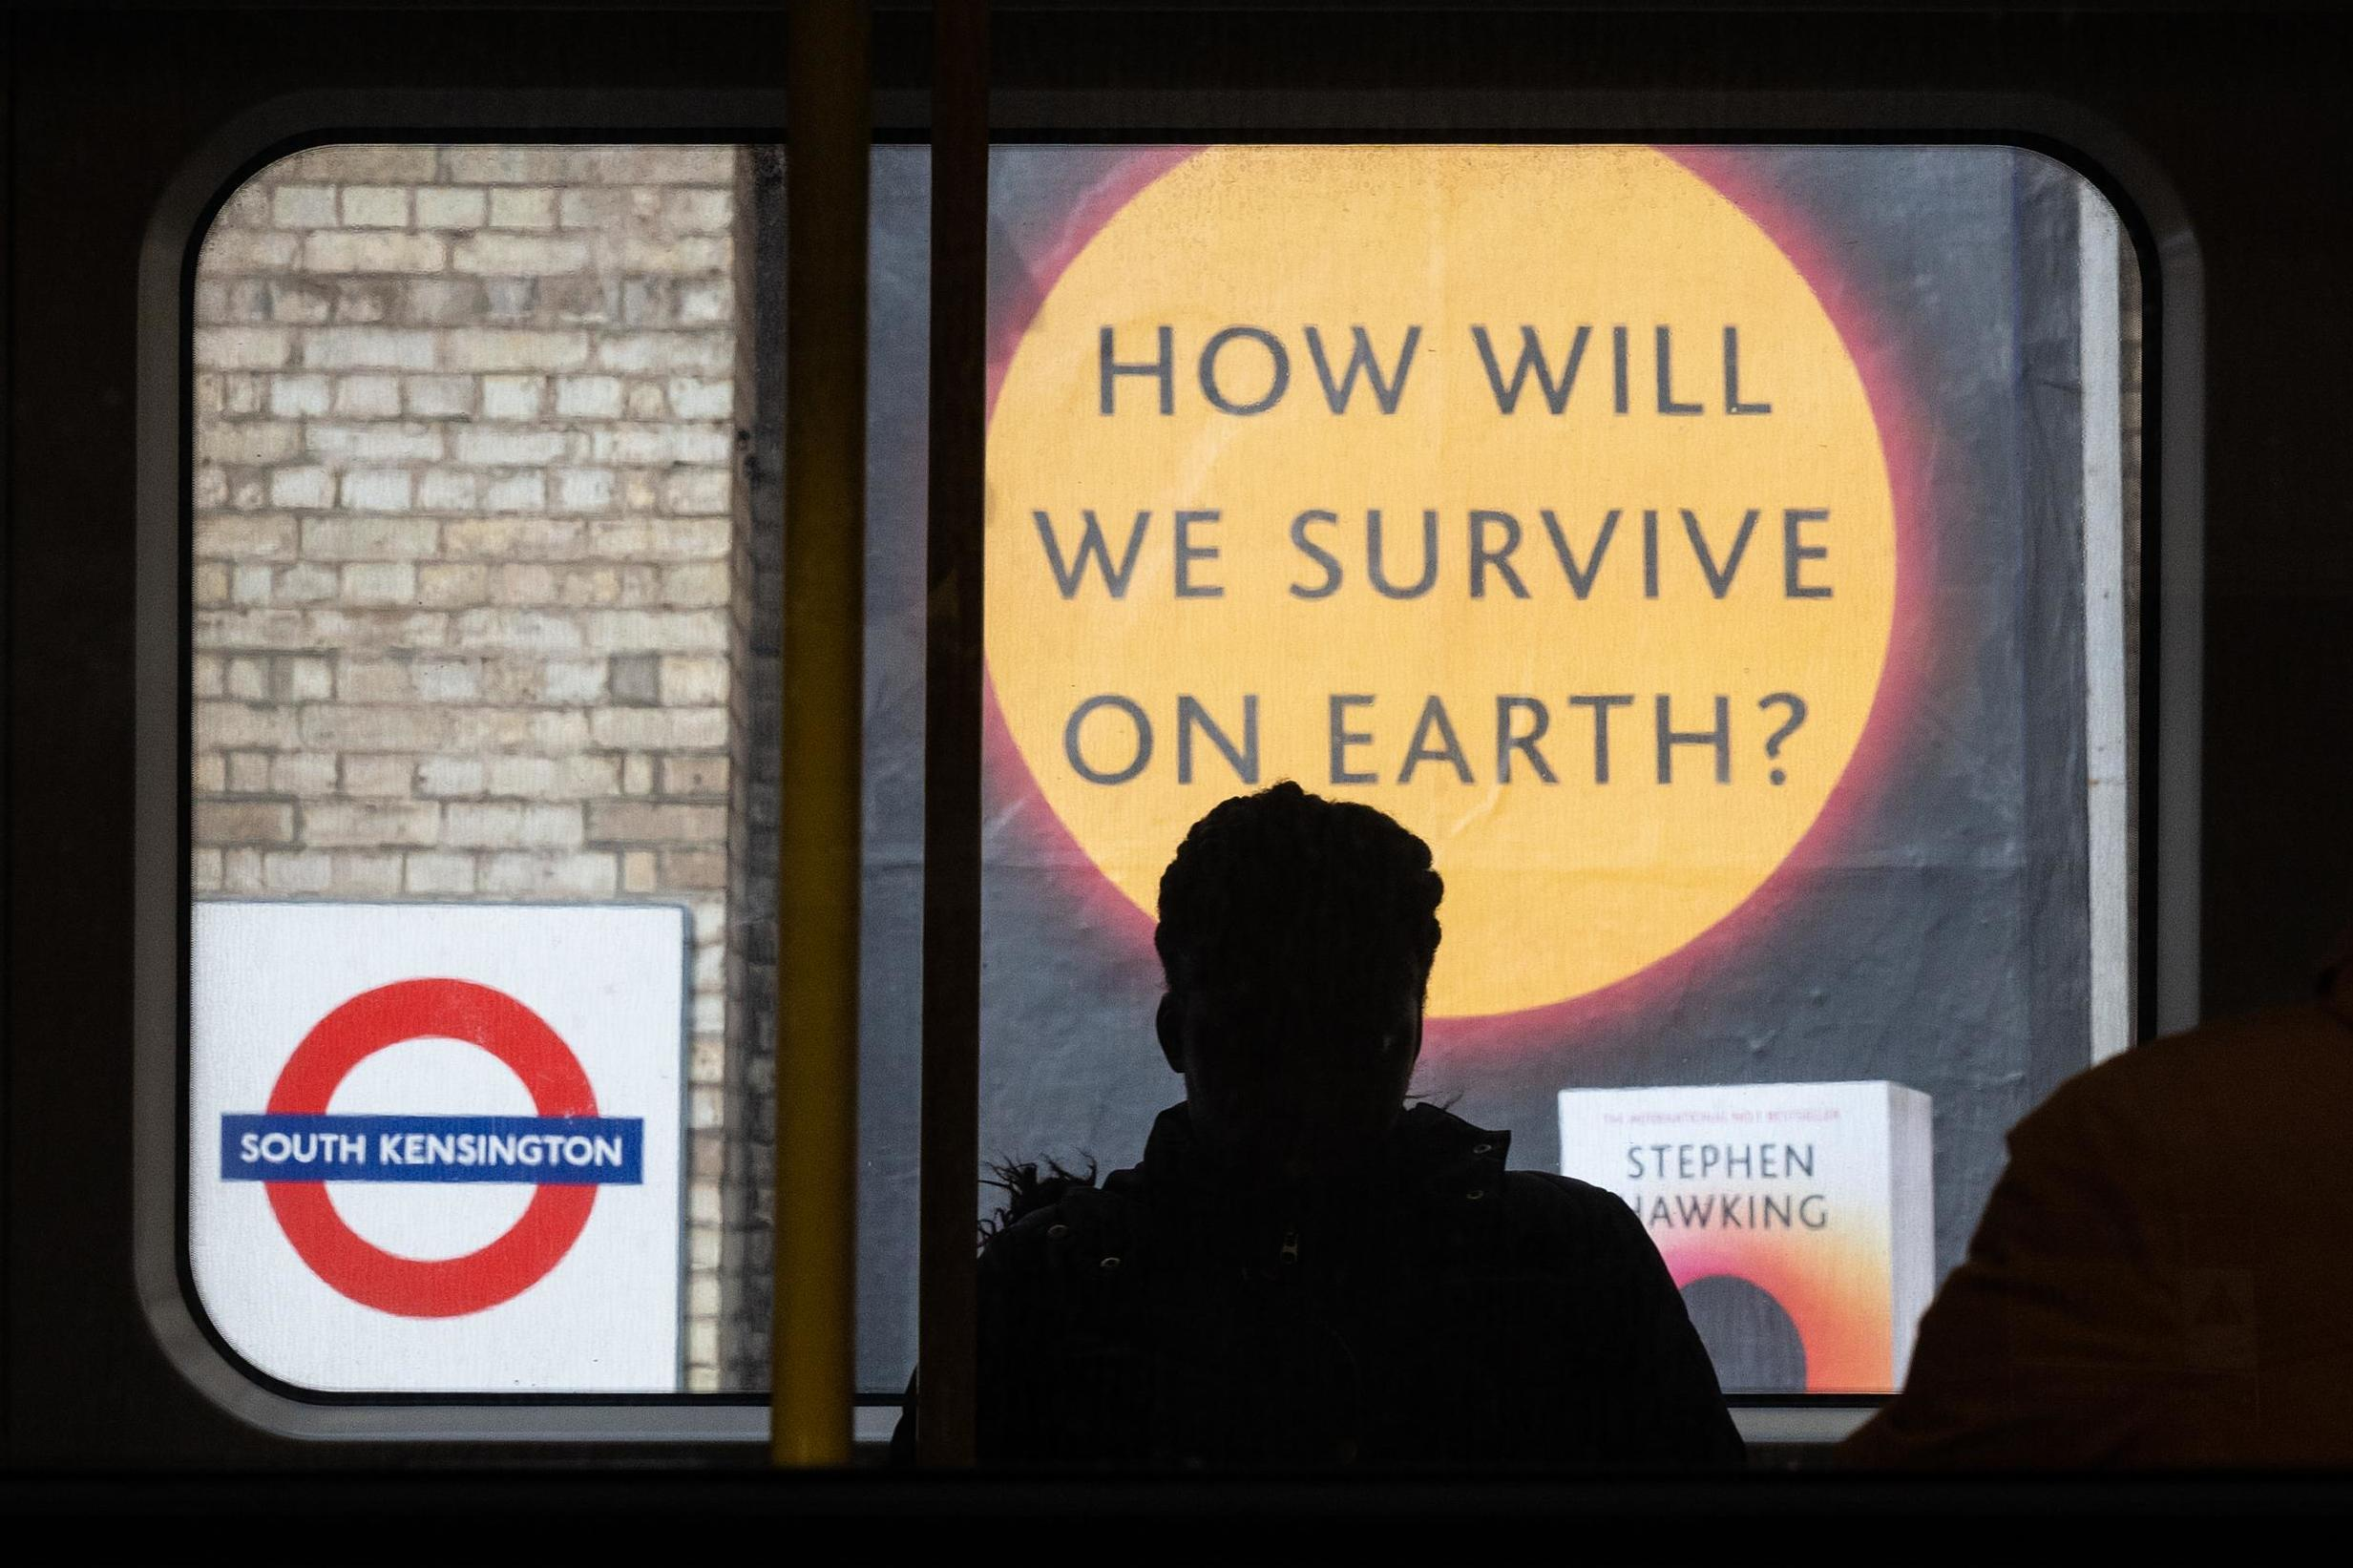 """A sign advertising a book titled """"How Will We Survive On Earth?"""" is seen on an underground station platform"""